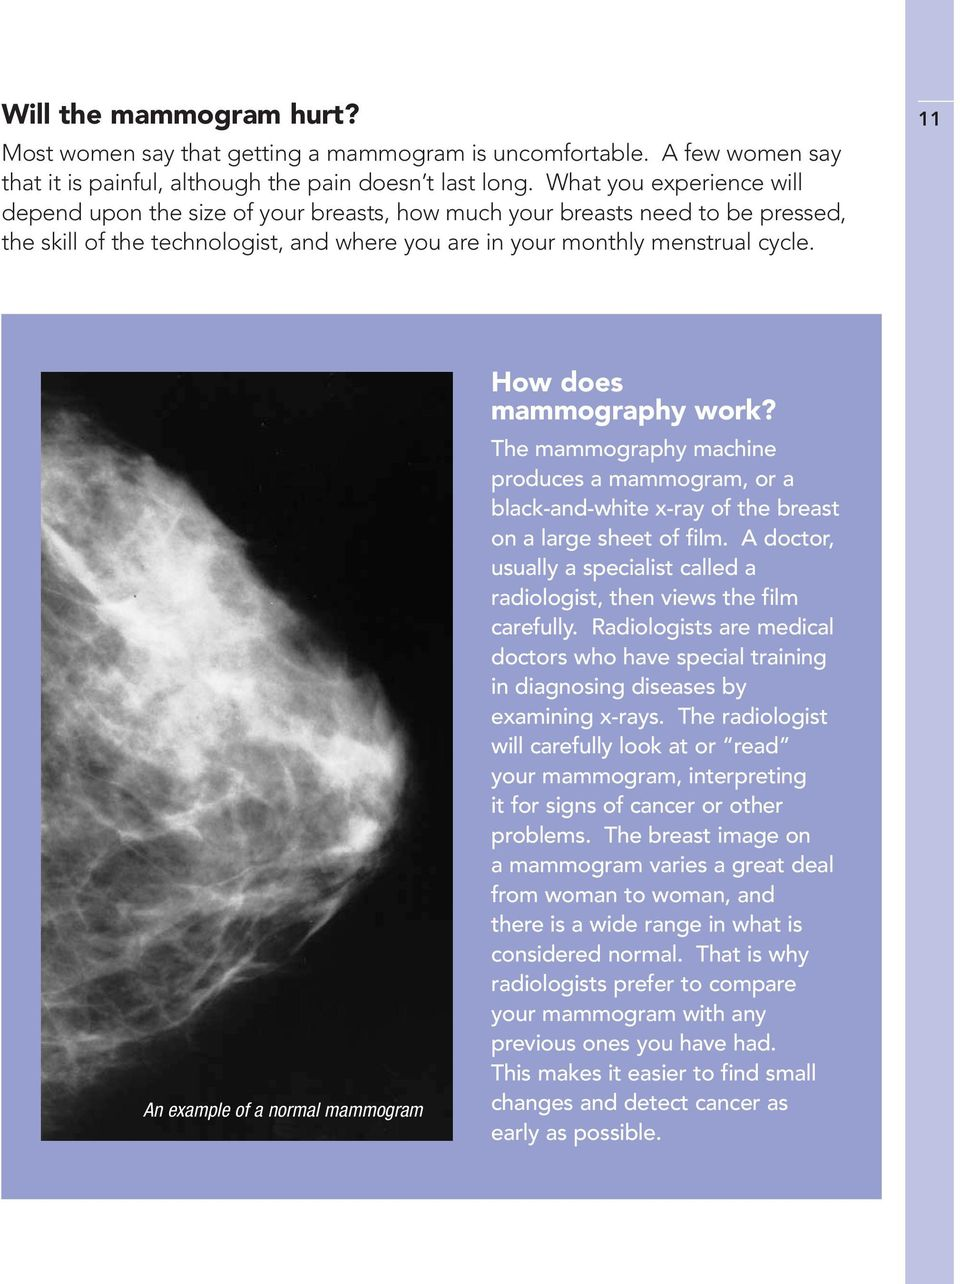 11 An example of a normal mammogram How does mammography work? The mammography machine produces a mammogram, or a black-and-white x-ray of the breast on a large sheet of film.